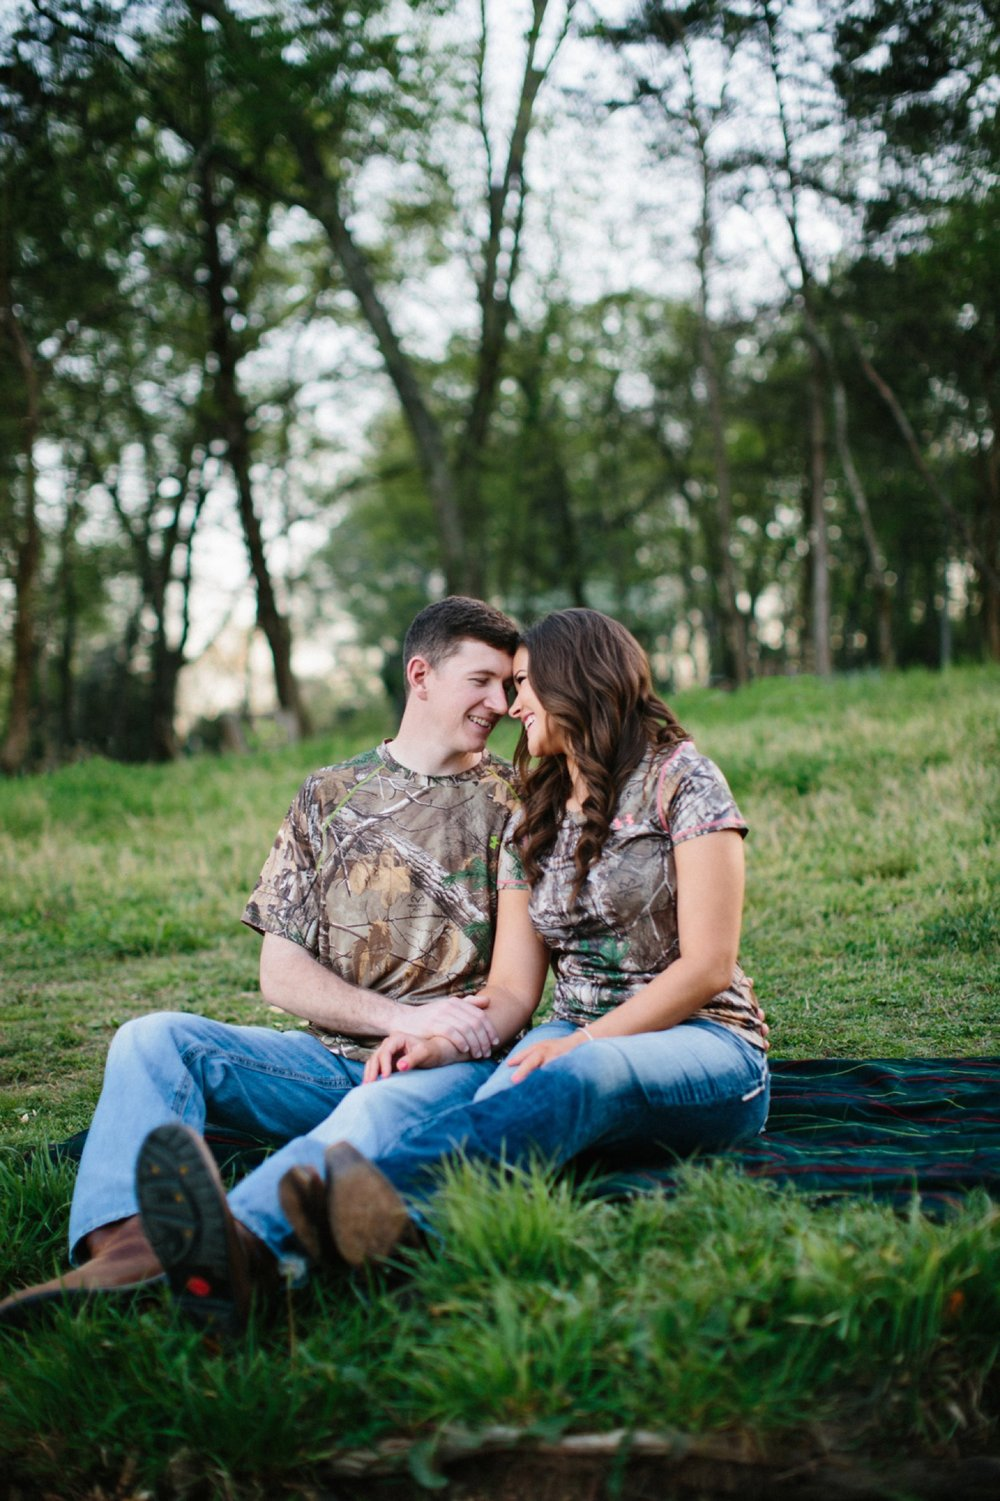 Breanna-Matt-Engagement-111.jpg